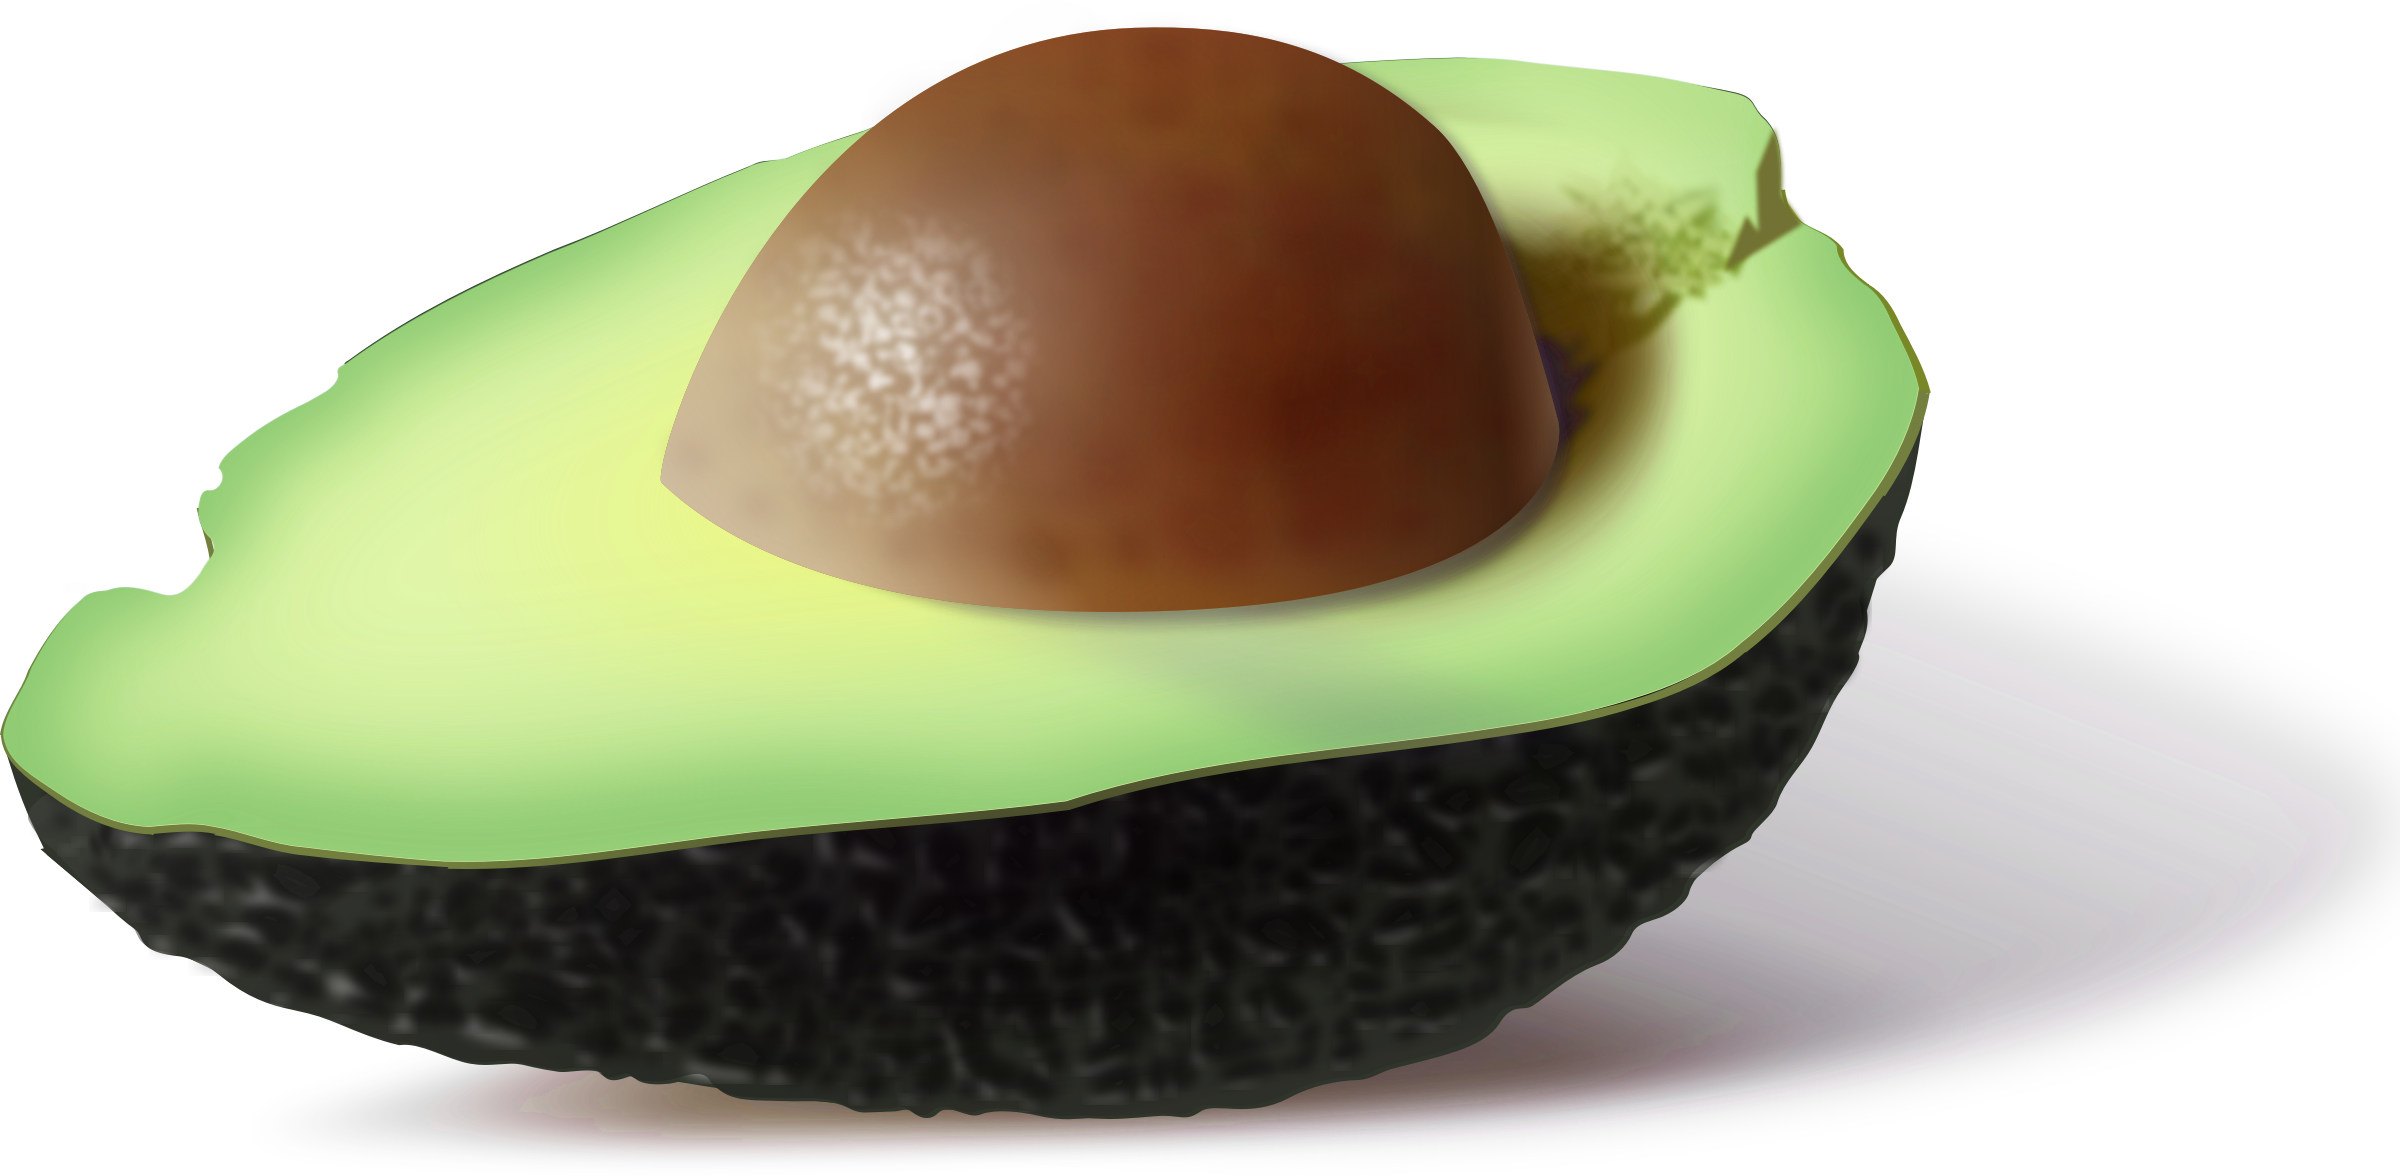 Nuts clipart avocado. Png images free download